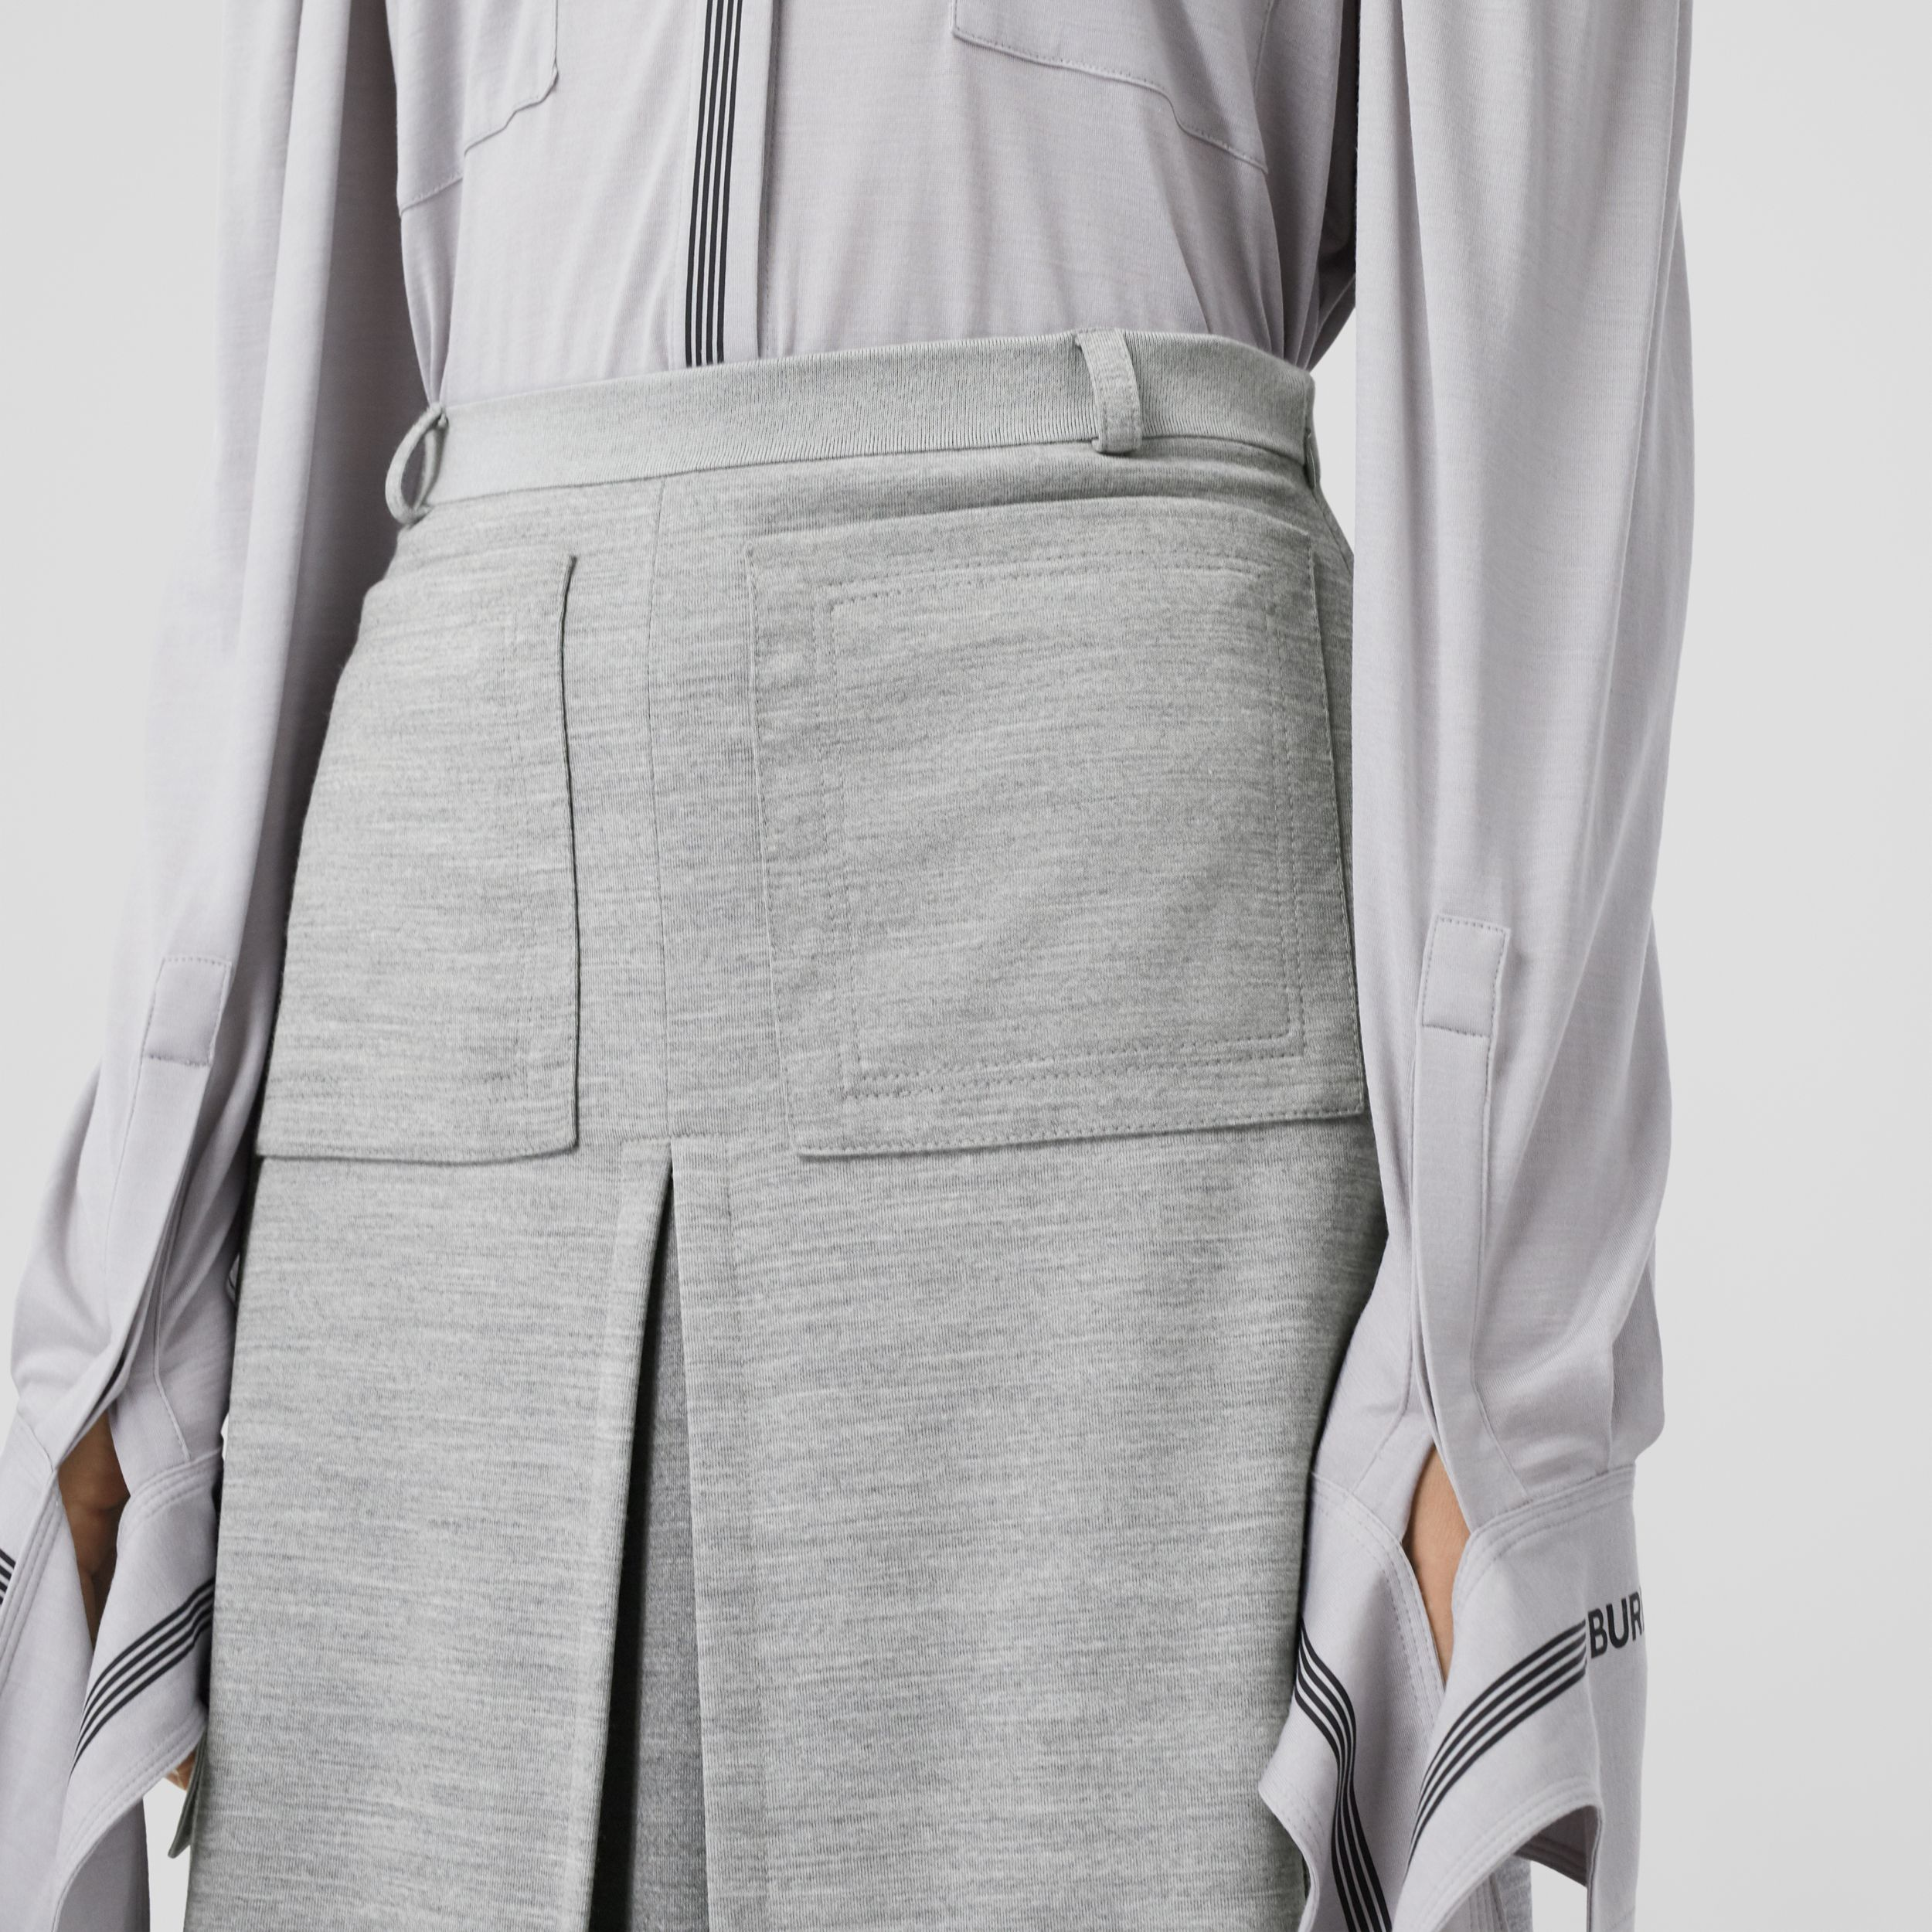 Box-pleat Detail Technical Wool Jersey A-line Skirt in Cloud Grey - Women | Burberry - 2